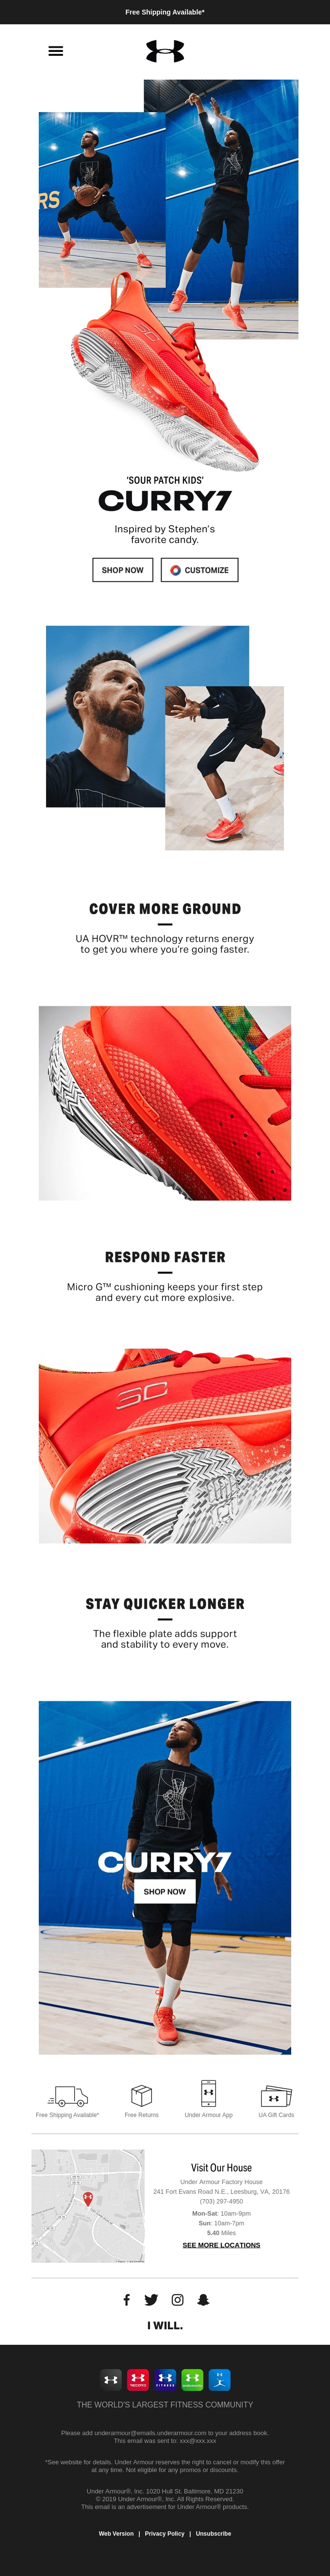 Under Armour email featuring brand and influencer product collaboration